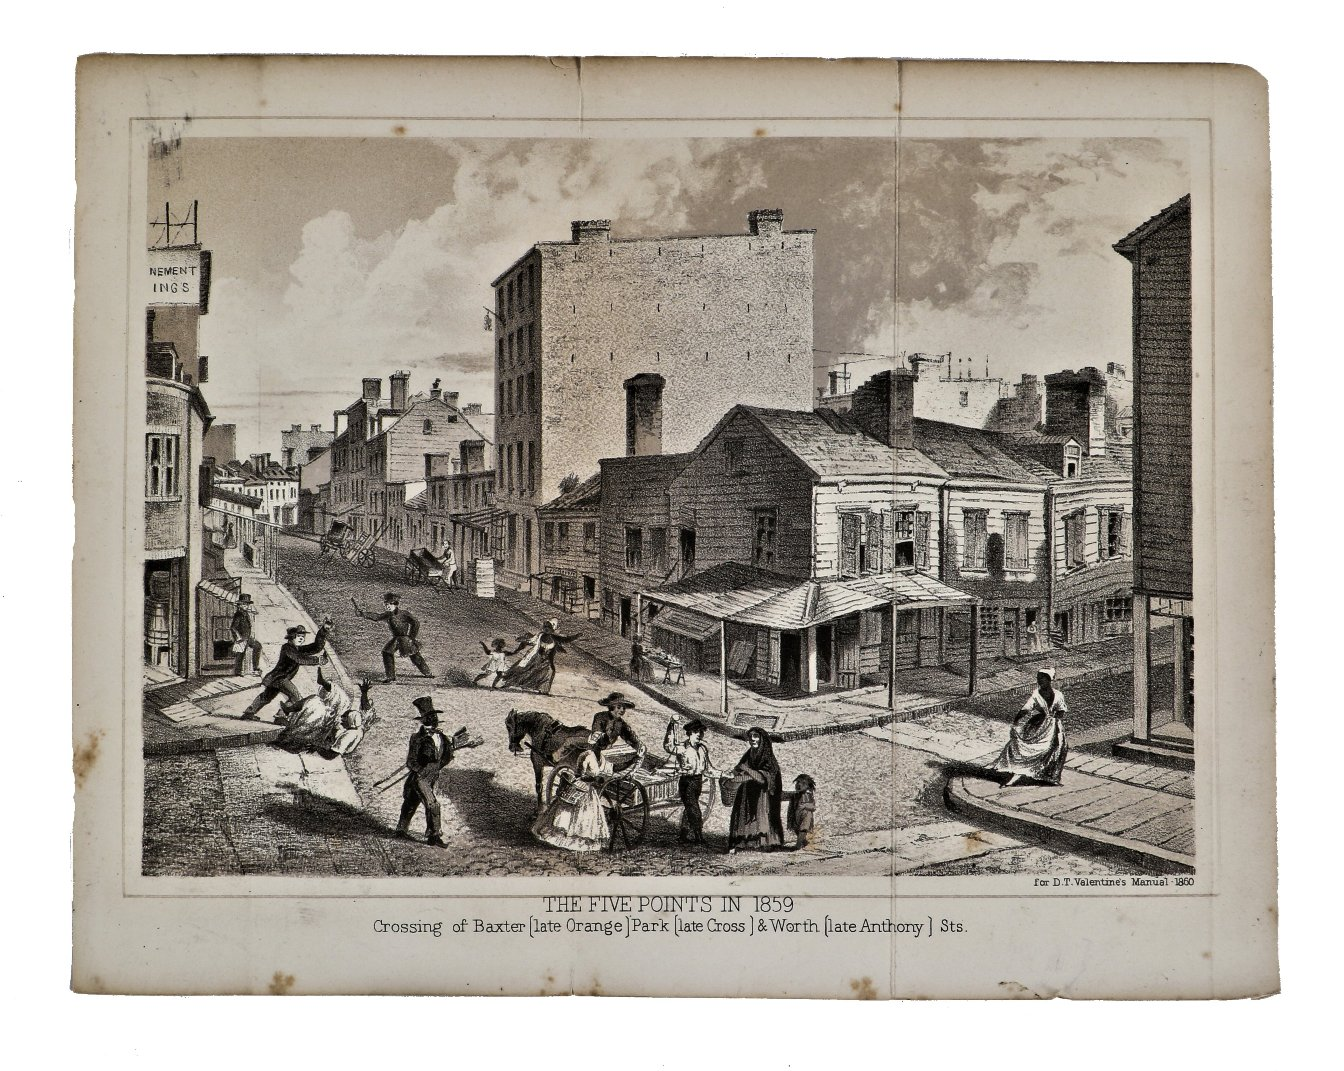 Hard To Find Antique Original Mid Nineteenth Century Black And White Lithograph Fold Out Print Illustrating A Street Level View Of New York City S Five Points For Cartographer D T Valentine S Annual Publication On